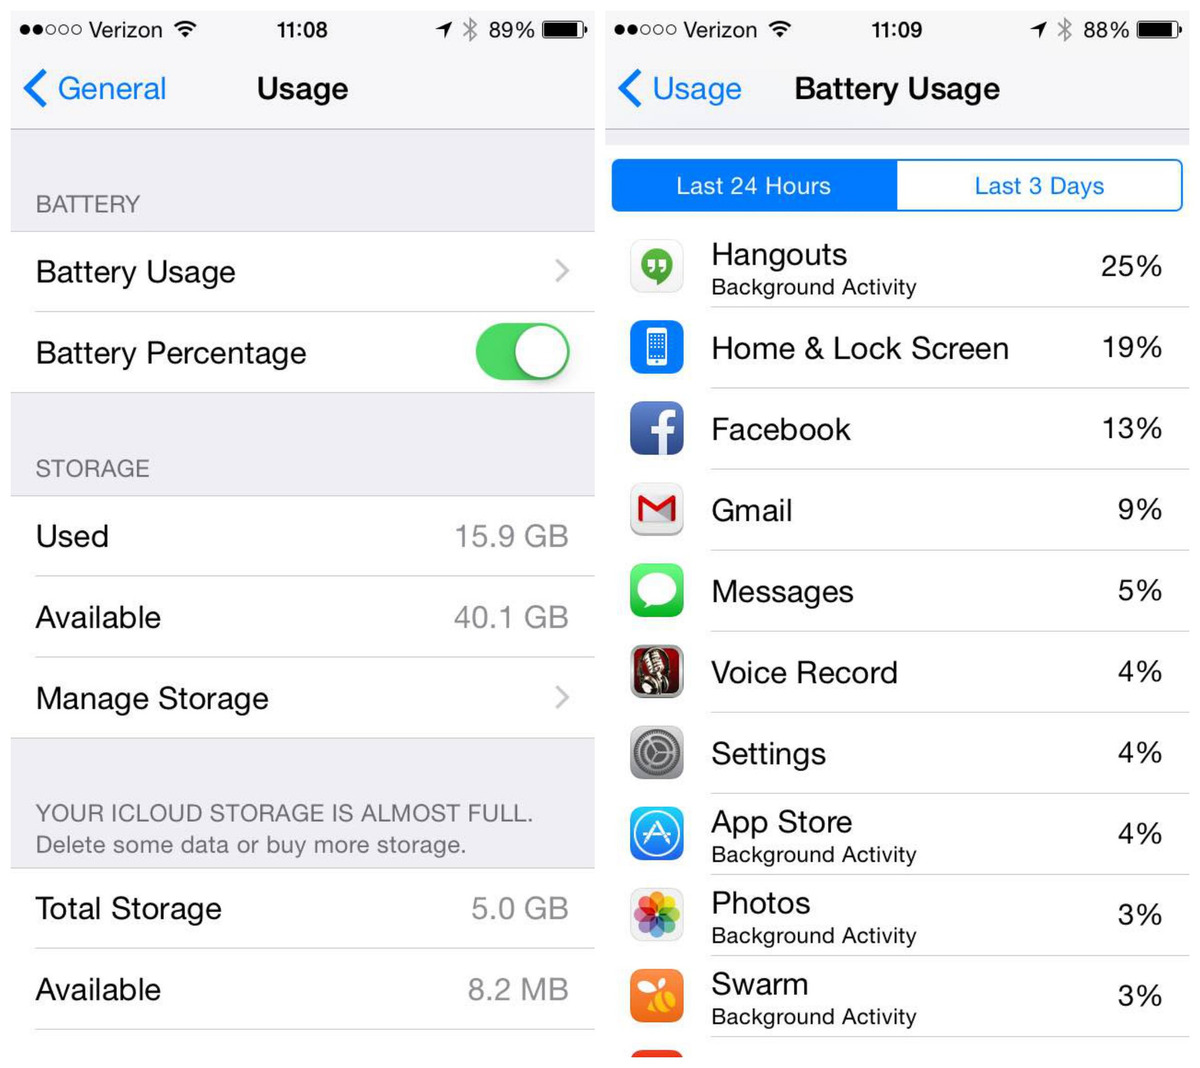 iOS 8 battery usage statistics